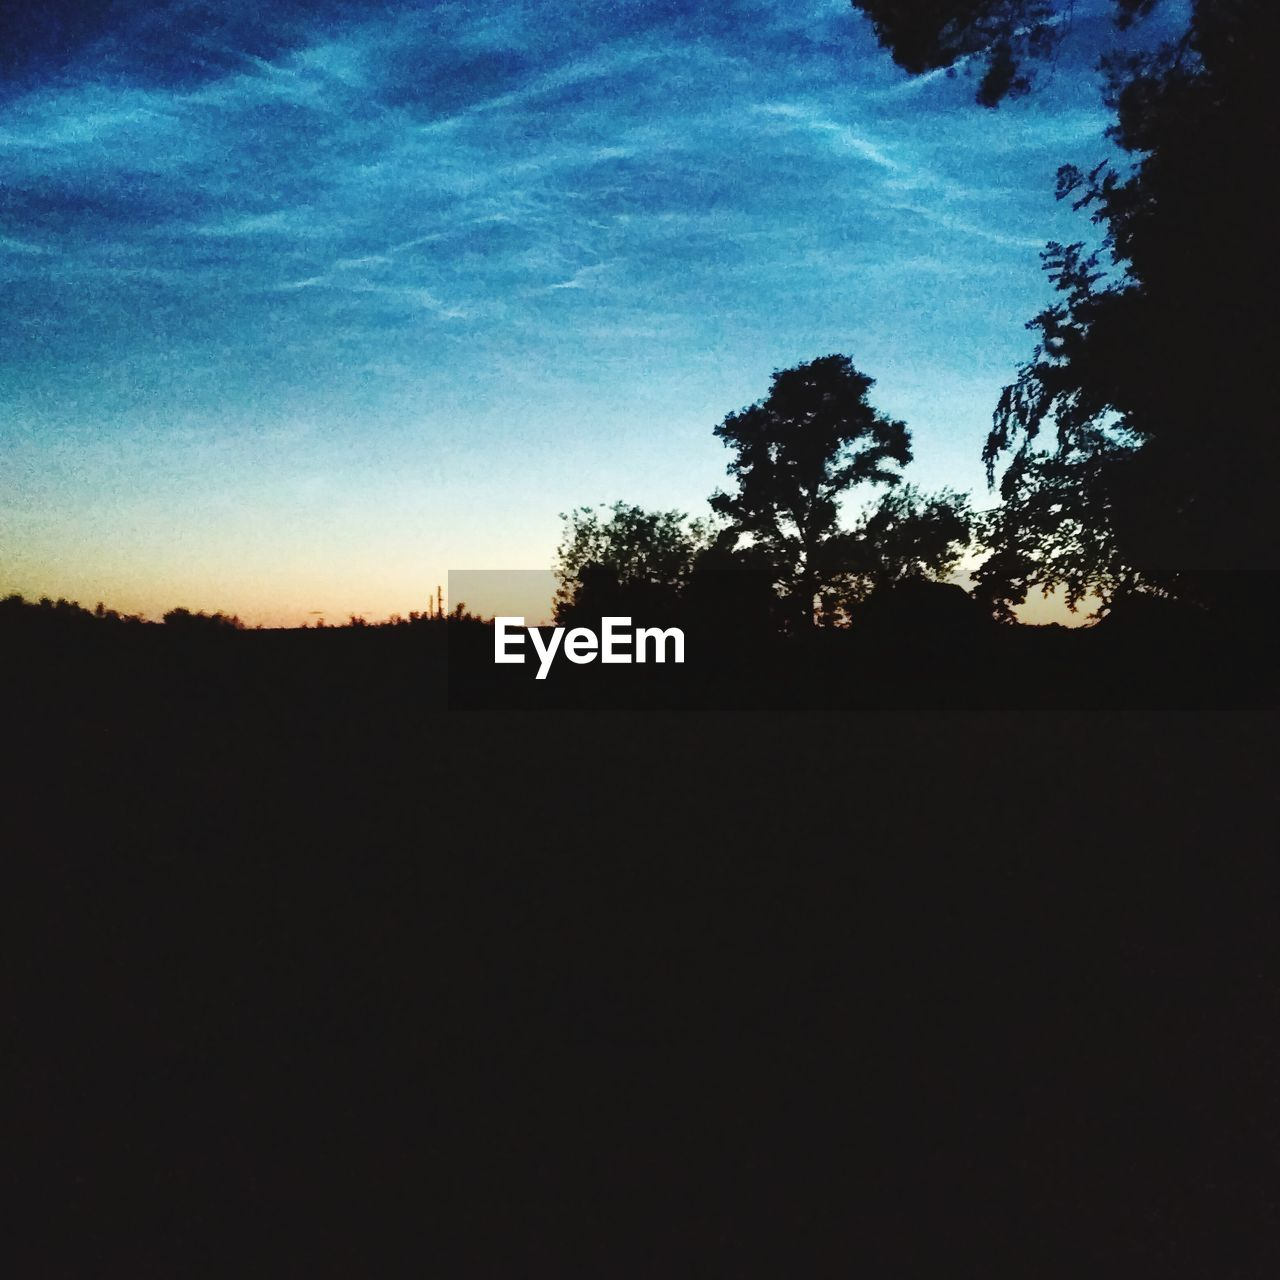 silhouette, dark, nature, tree, sky, landscape, no people, outdoors, day